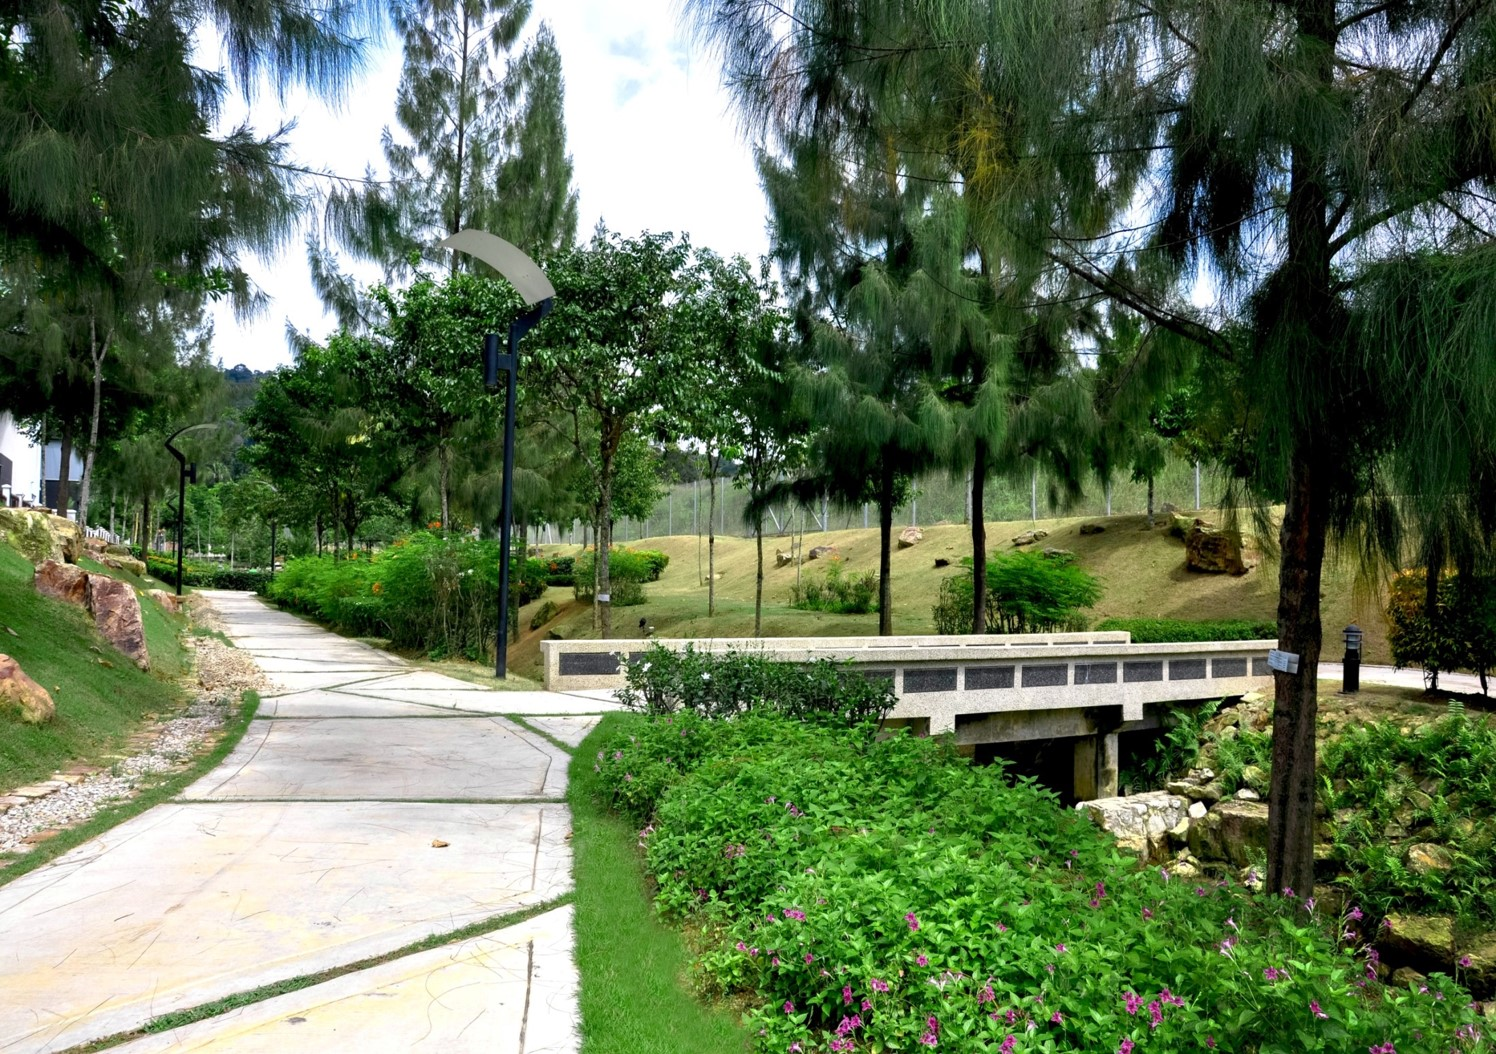 Aroma tropics phase 6 water way setia eco park for Institute of landscape architects